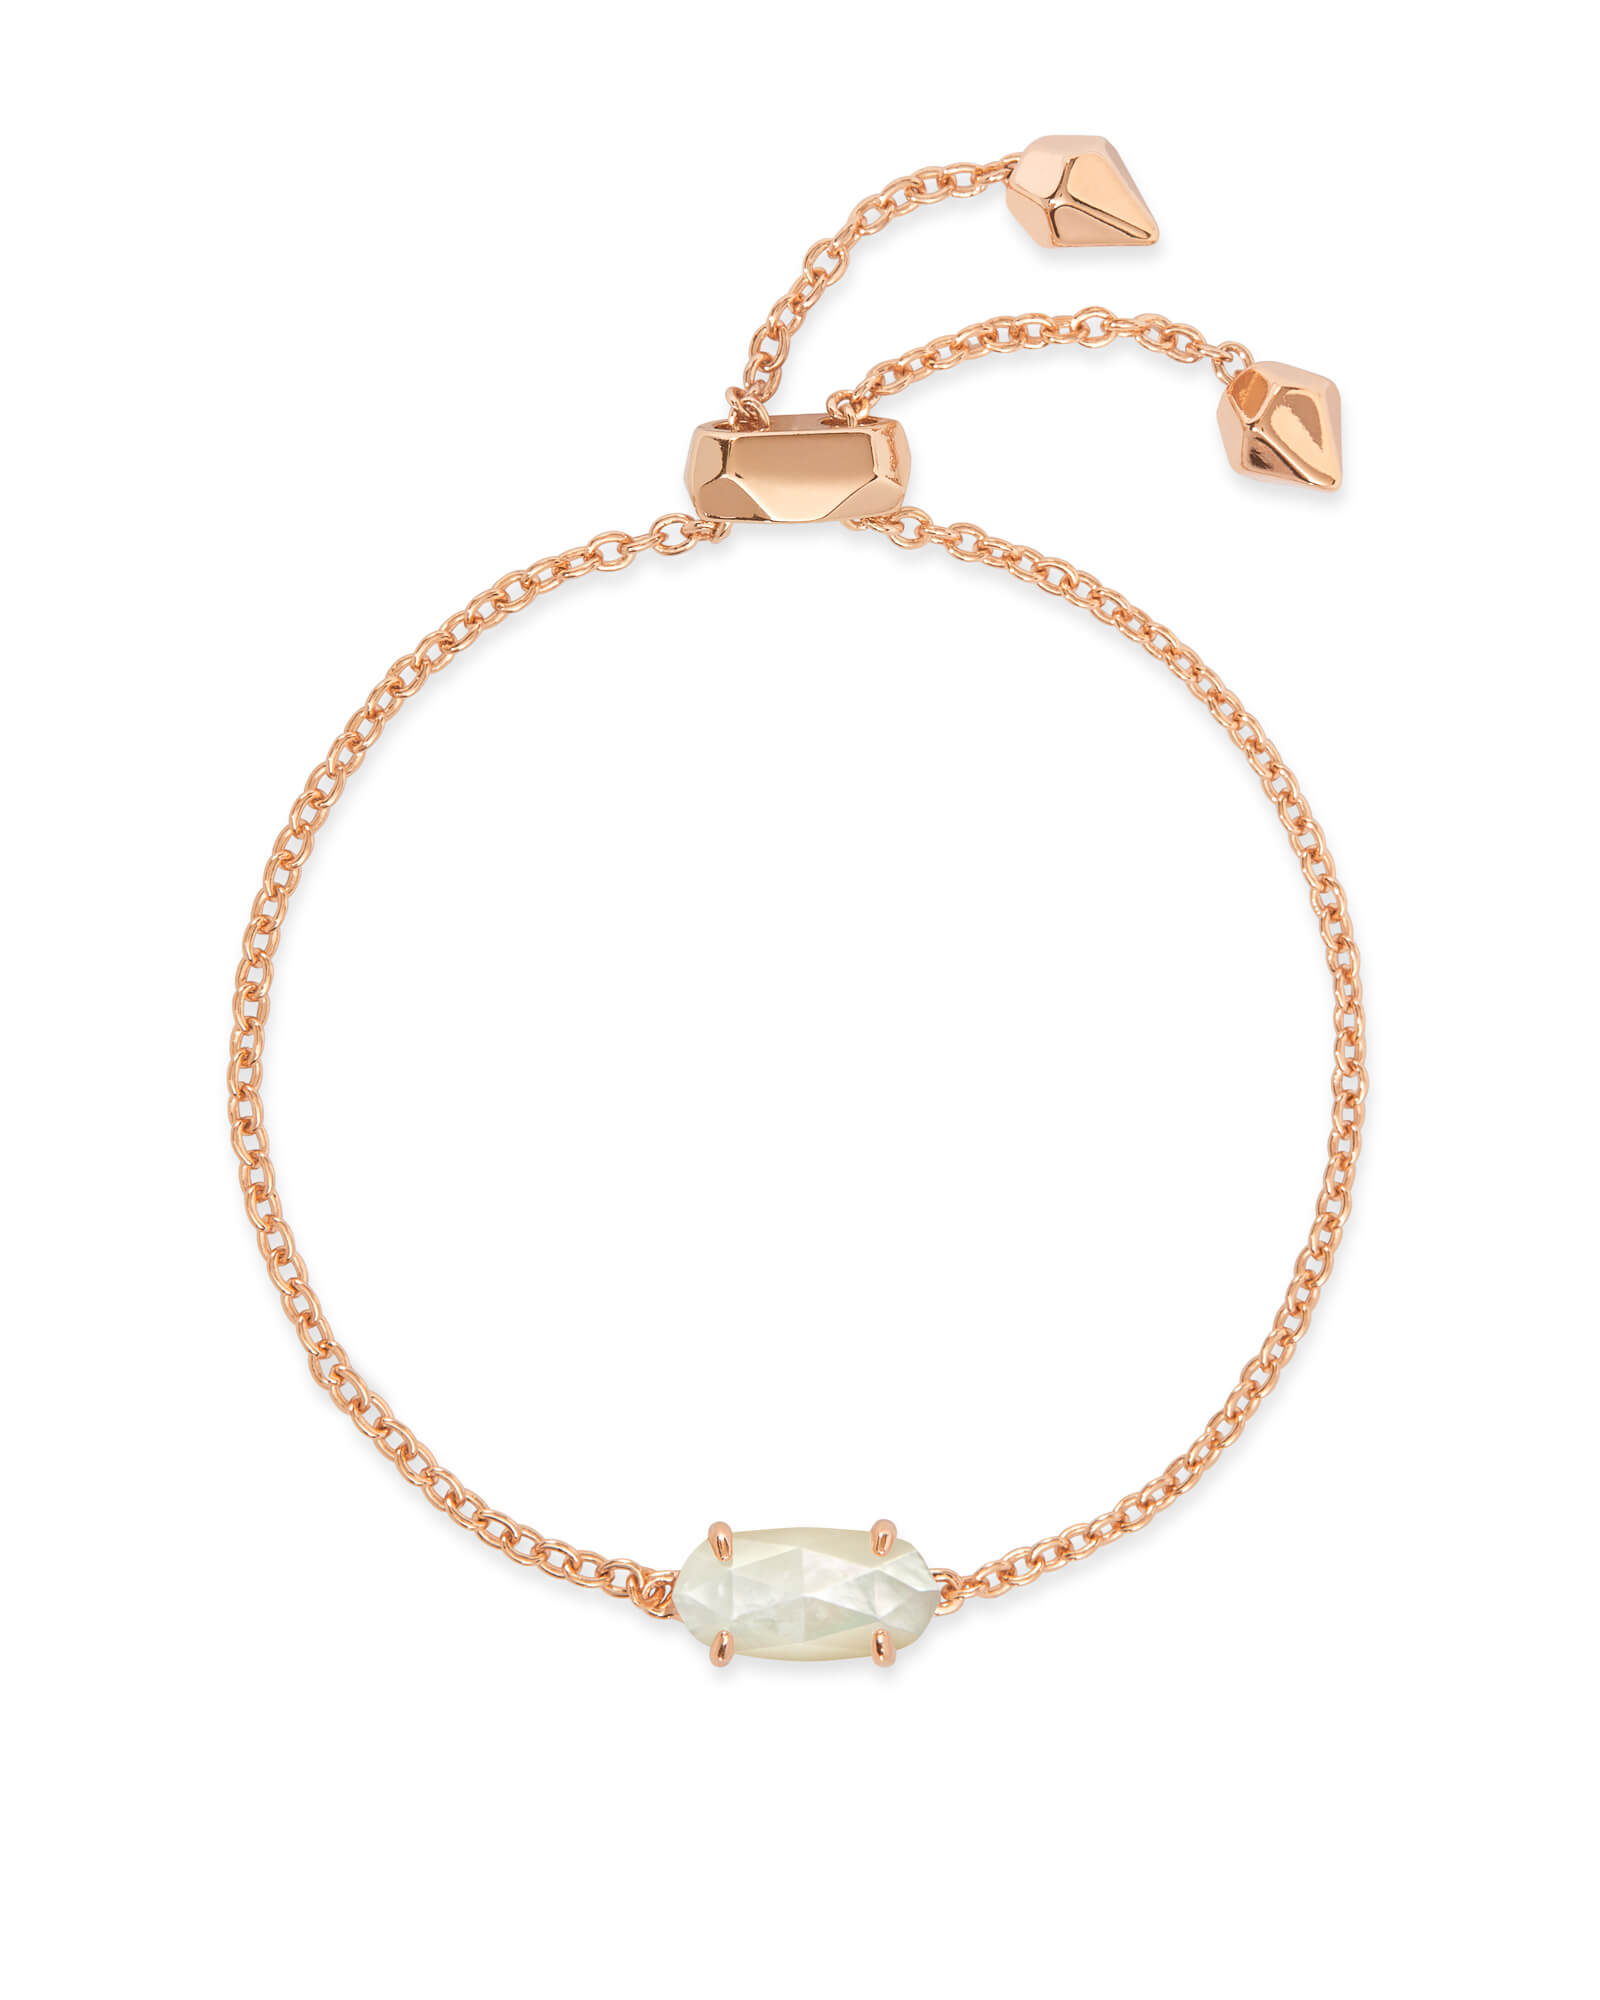 Everlyne Rose Gold Chain Bracelet In Ivory Pearl